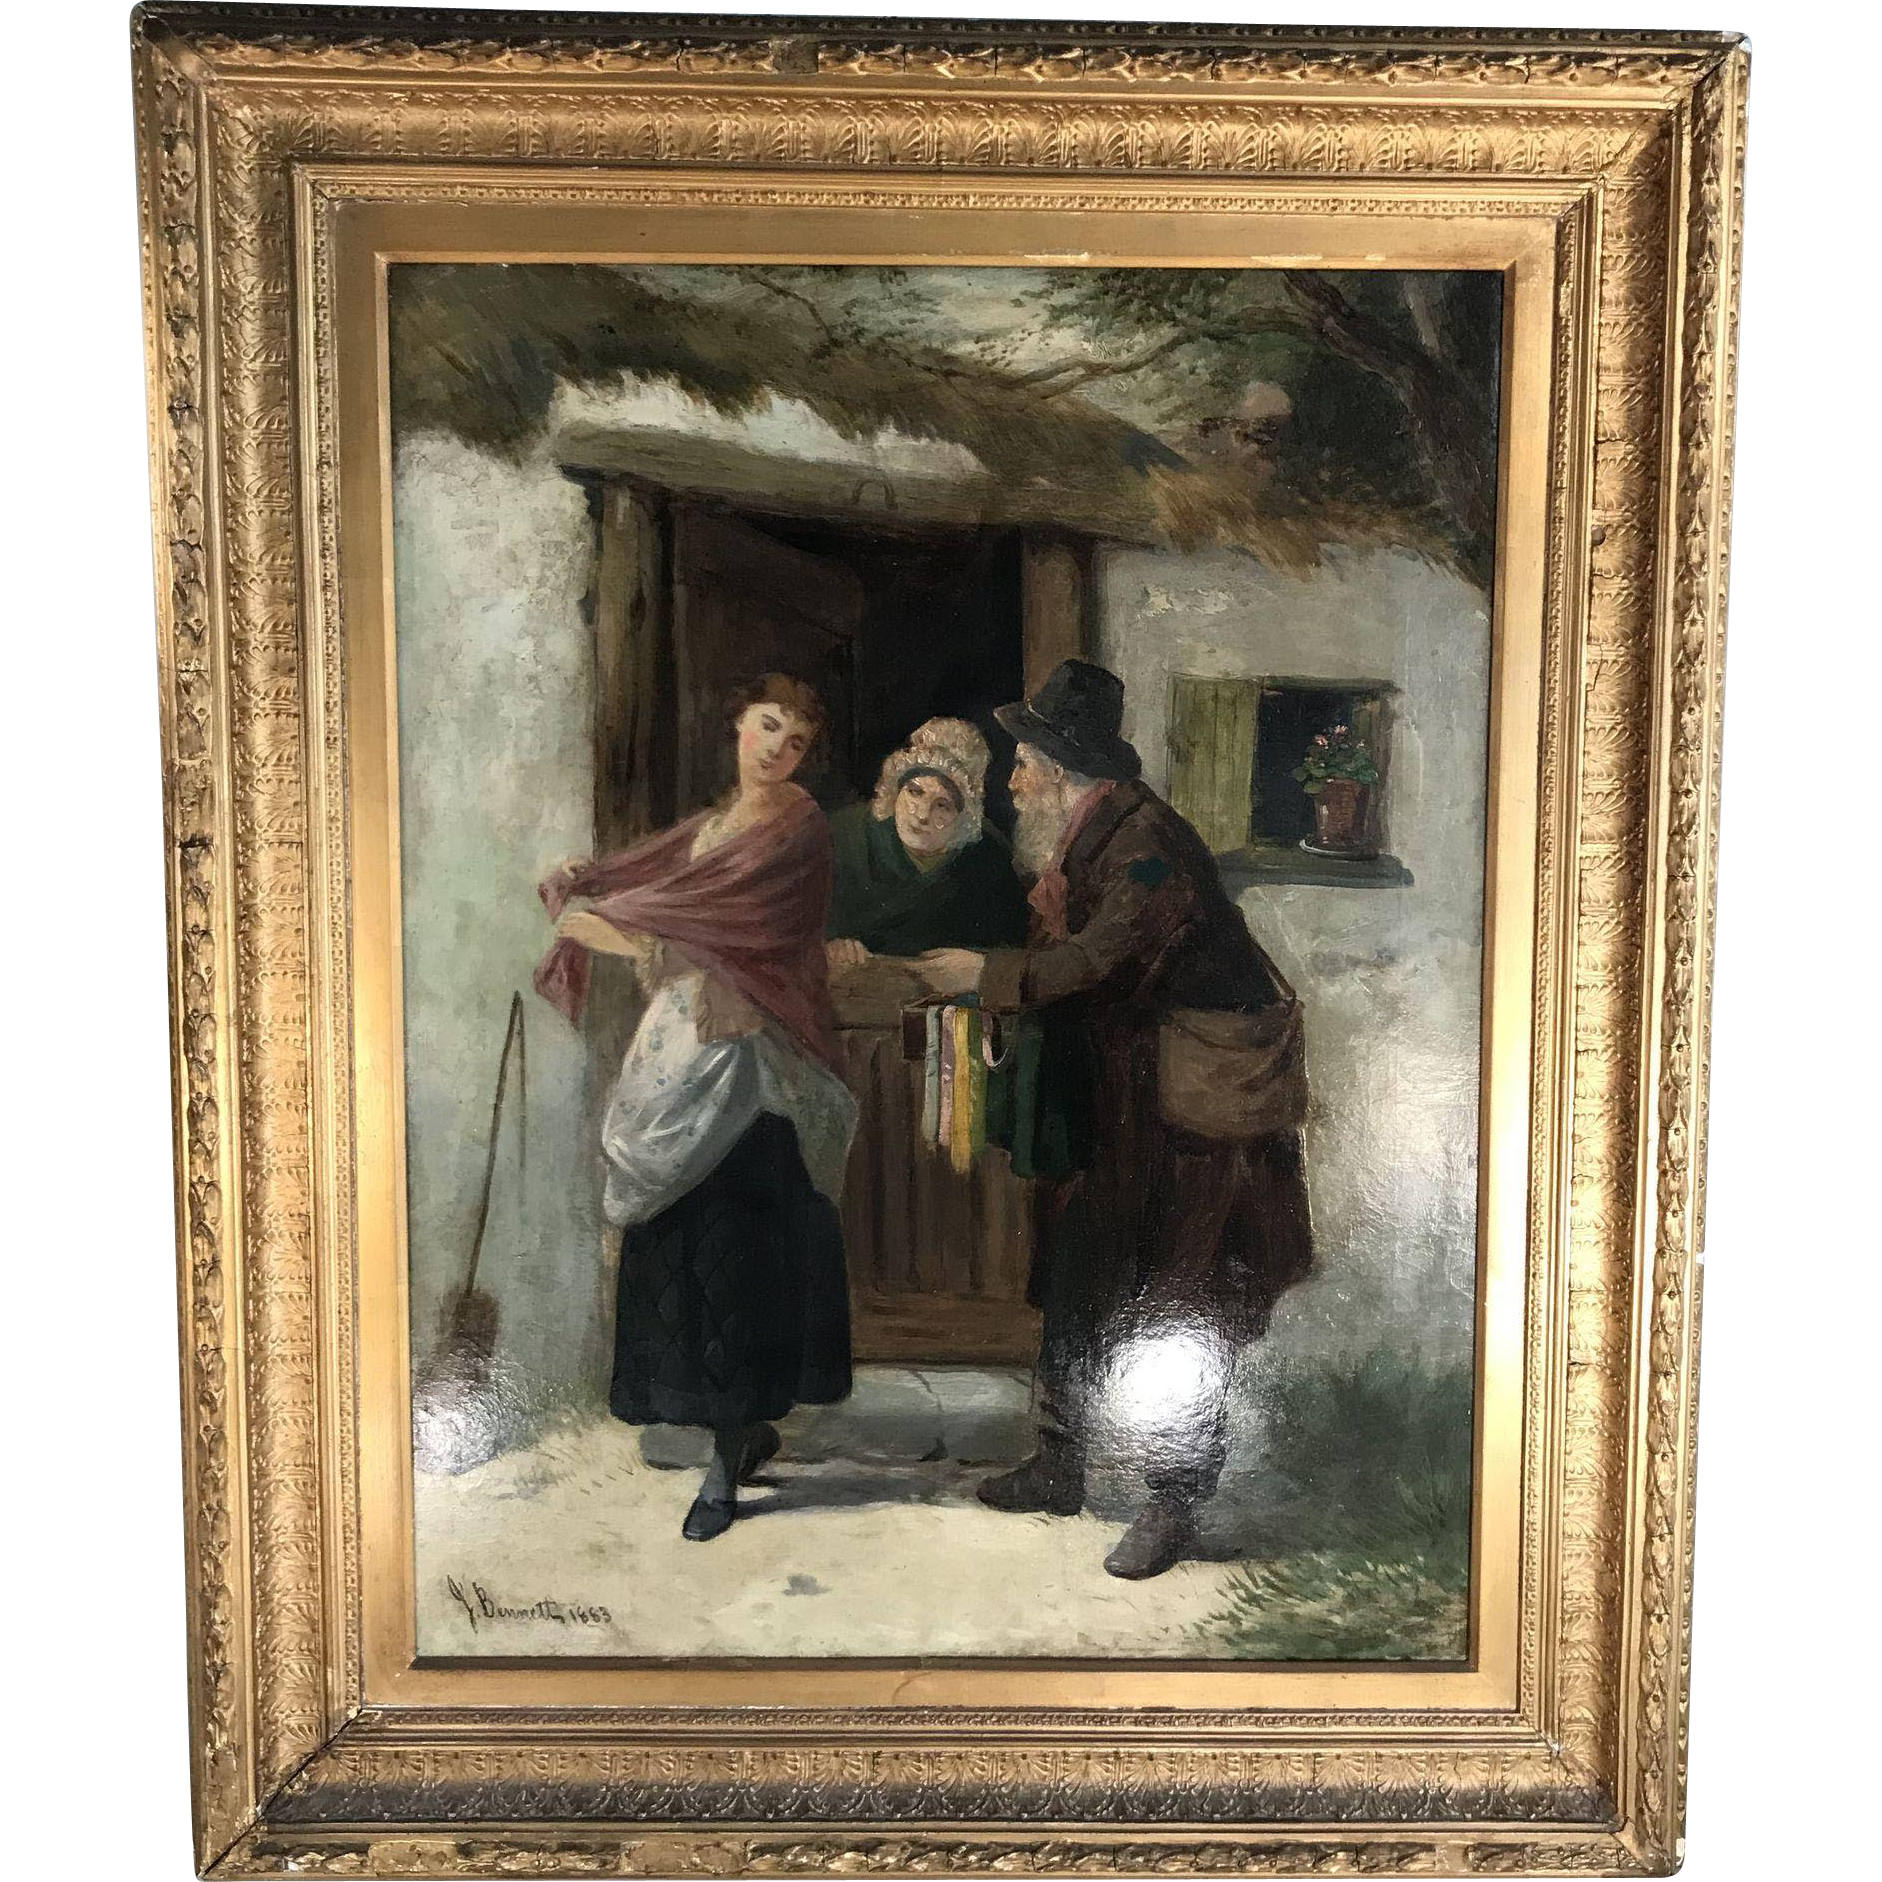 Very large antique Victorian framed oil painting in gesso frame